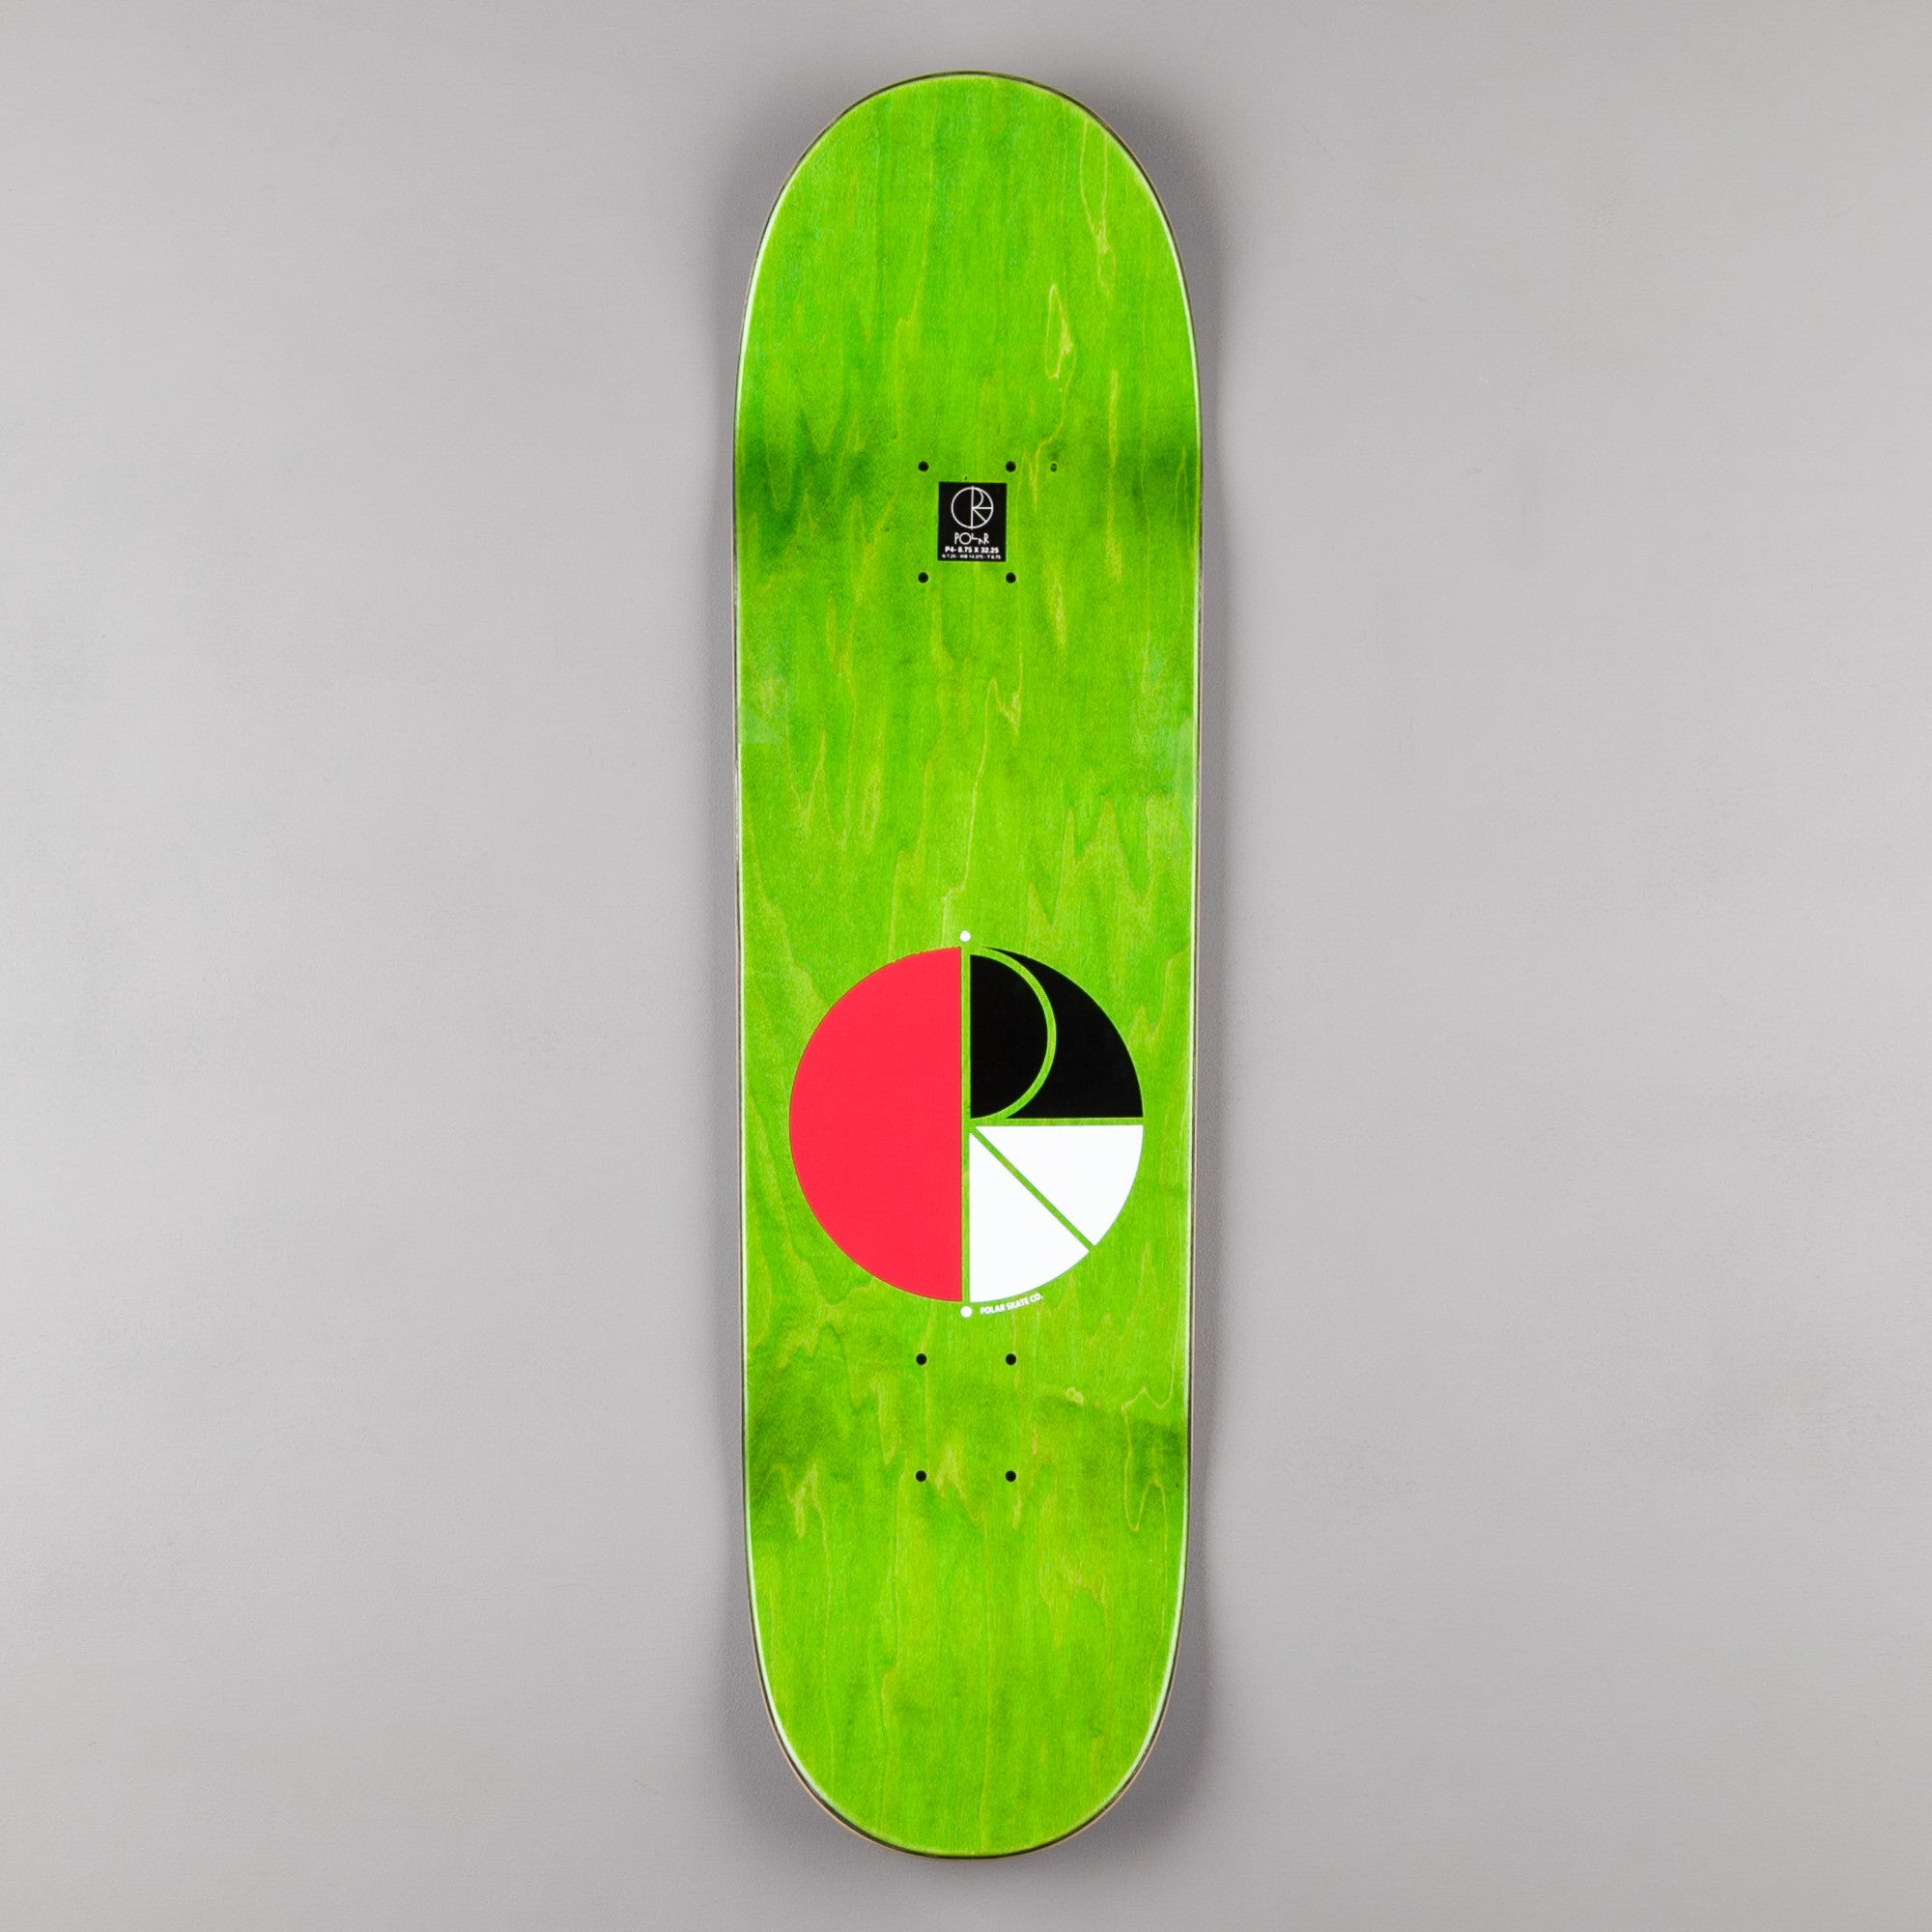 Polar Kevin Rodrigues Creepy Hand P4 Shape Deck - 8.75""